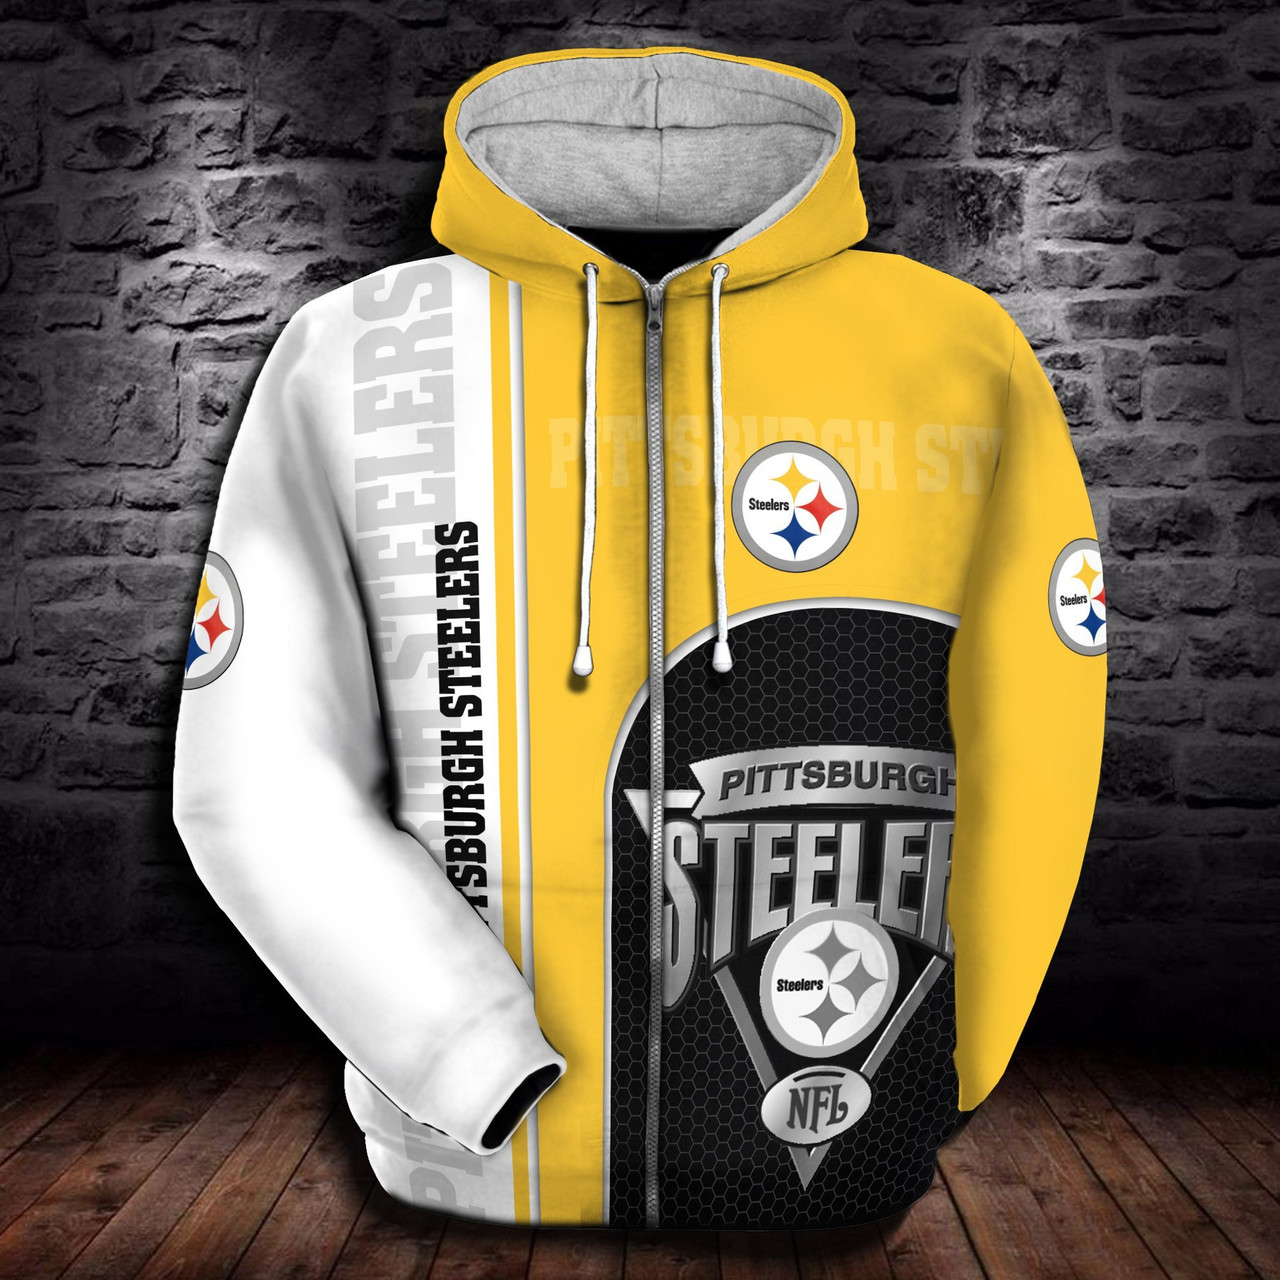 brand new d6b3d 7d32f **(OFFICIAL-N.F.L.PITTSBURGH-STEELERS-ZIPPERED-HOODIES/CUSTOM-3D-STEELERS-LOGOS  & OFFICIAL-STEELERS-TEAM-COLORS/NICE-3D-DETAILED-GRAPHIC-PRINTED-DOUBL...